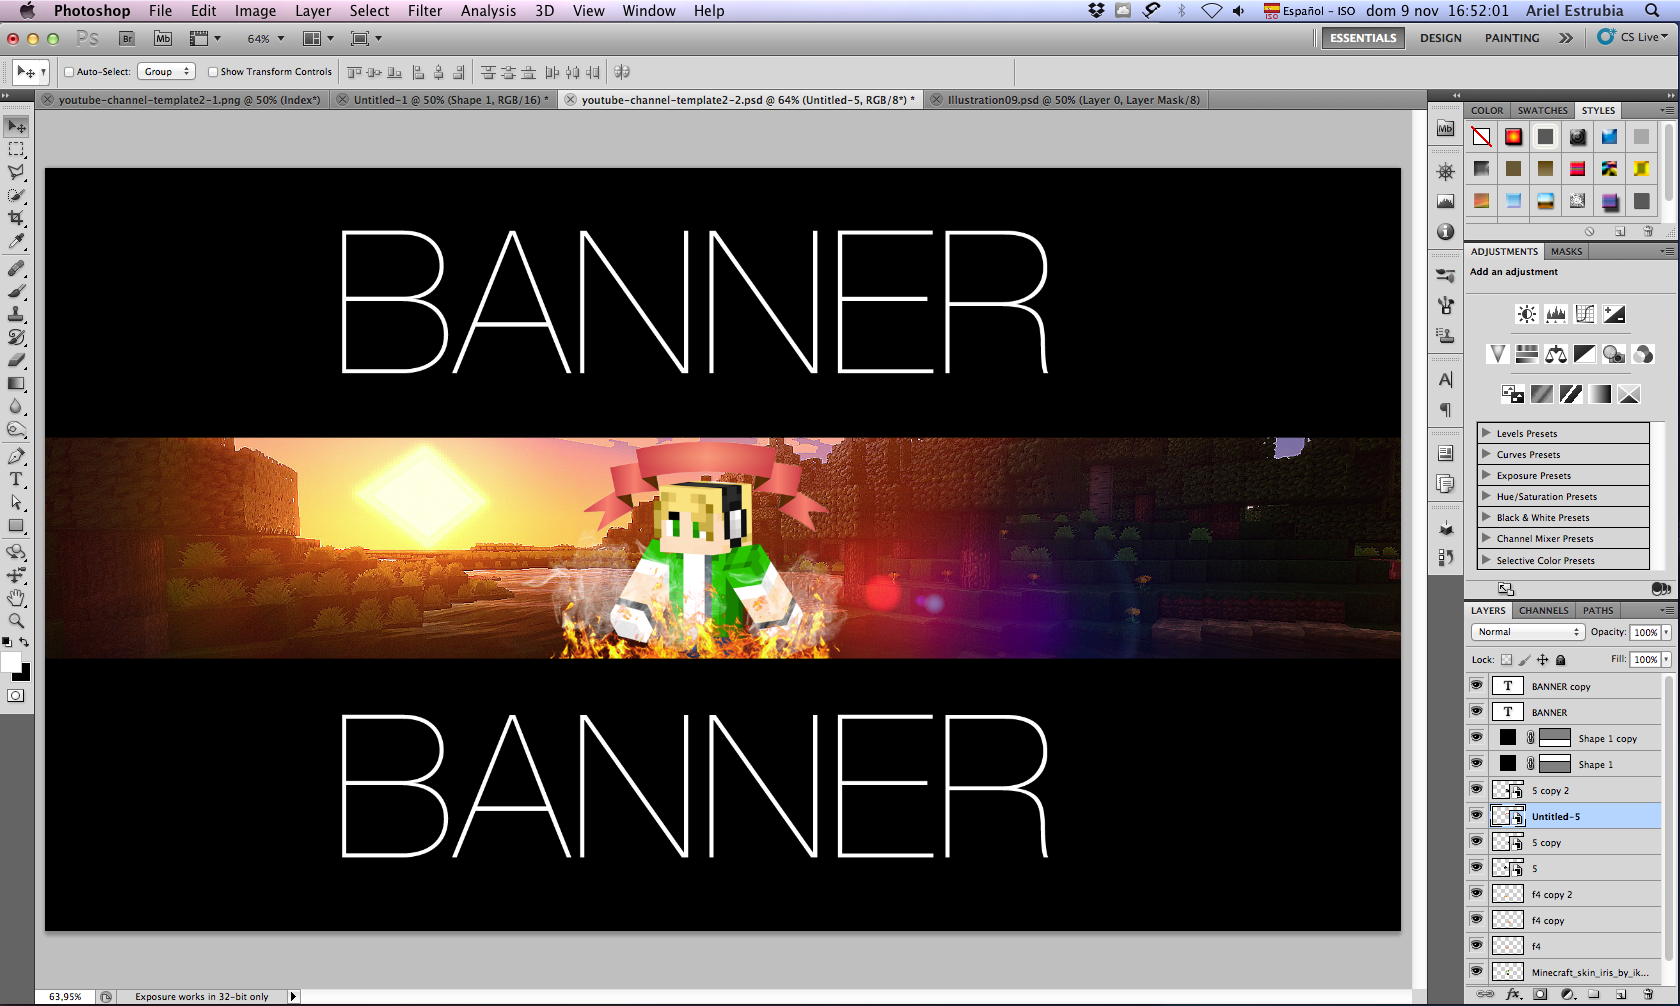 [Photoshop] Banner para Youtube